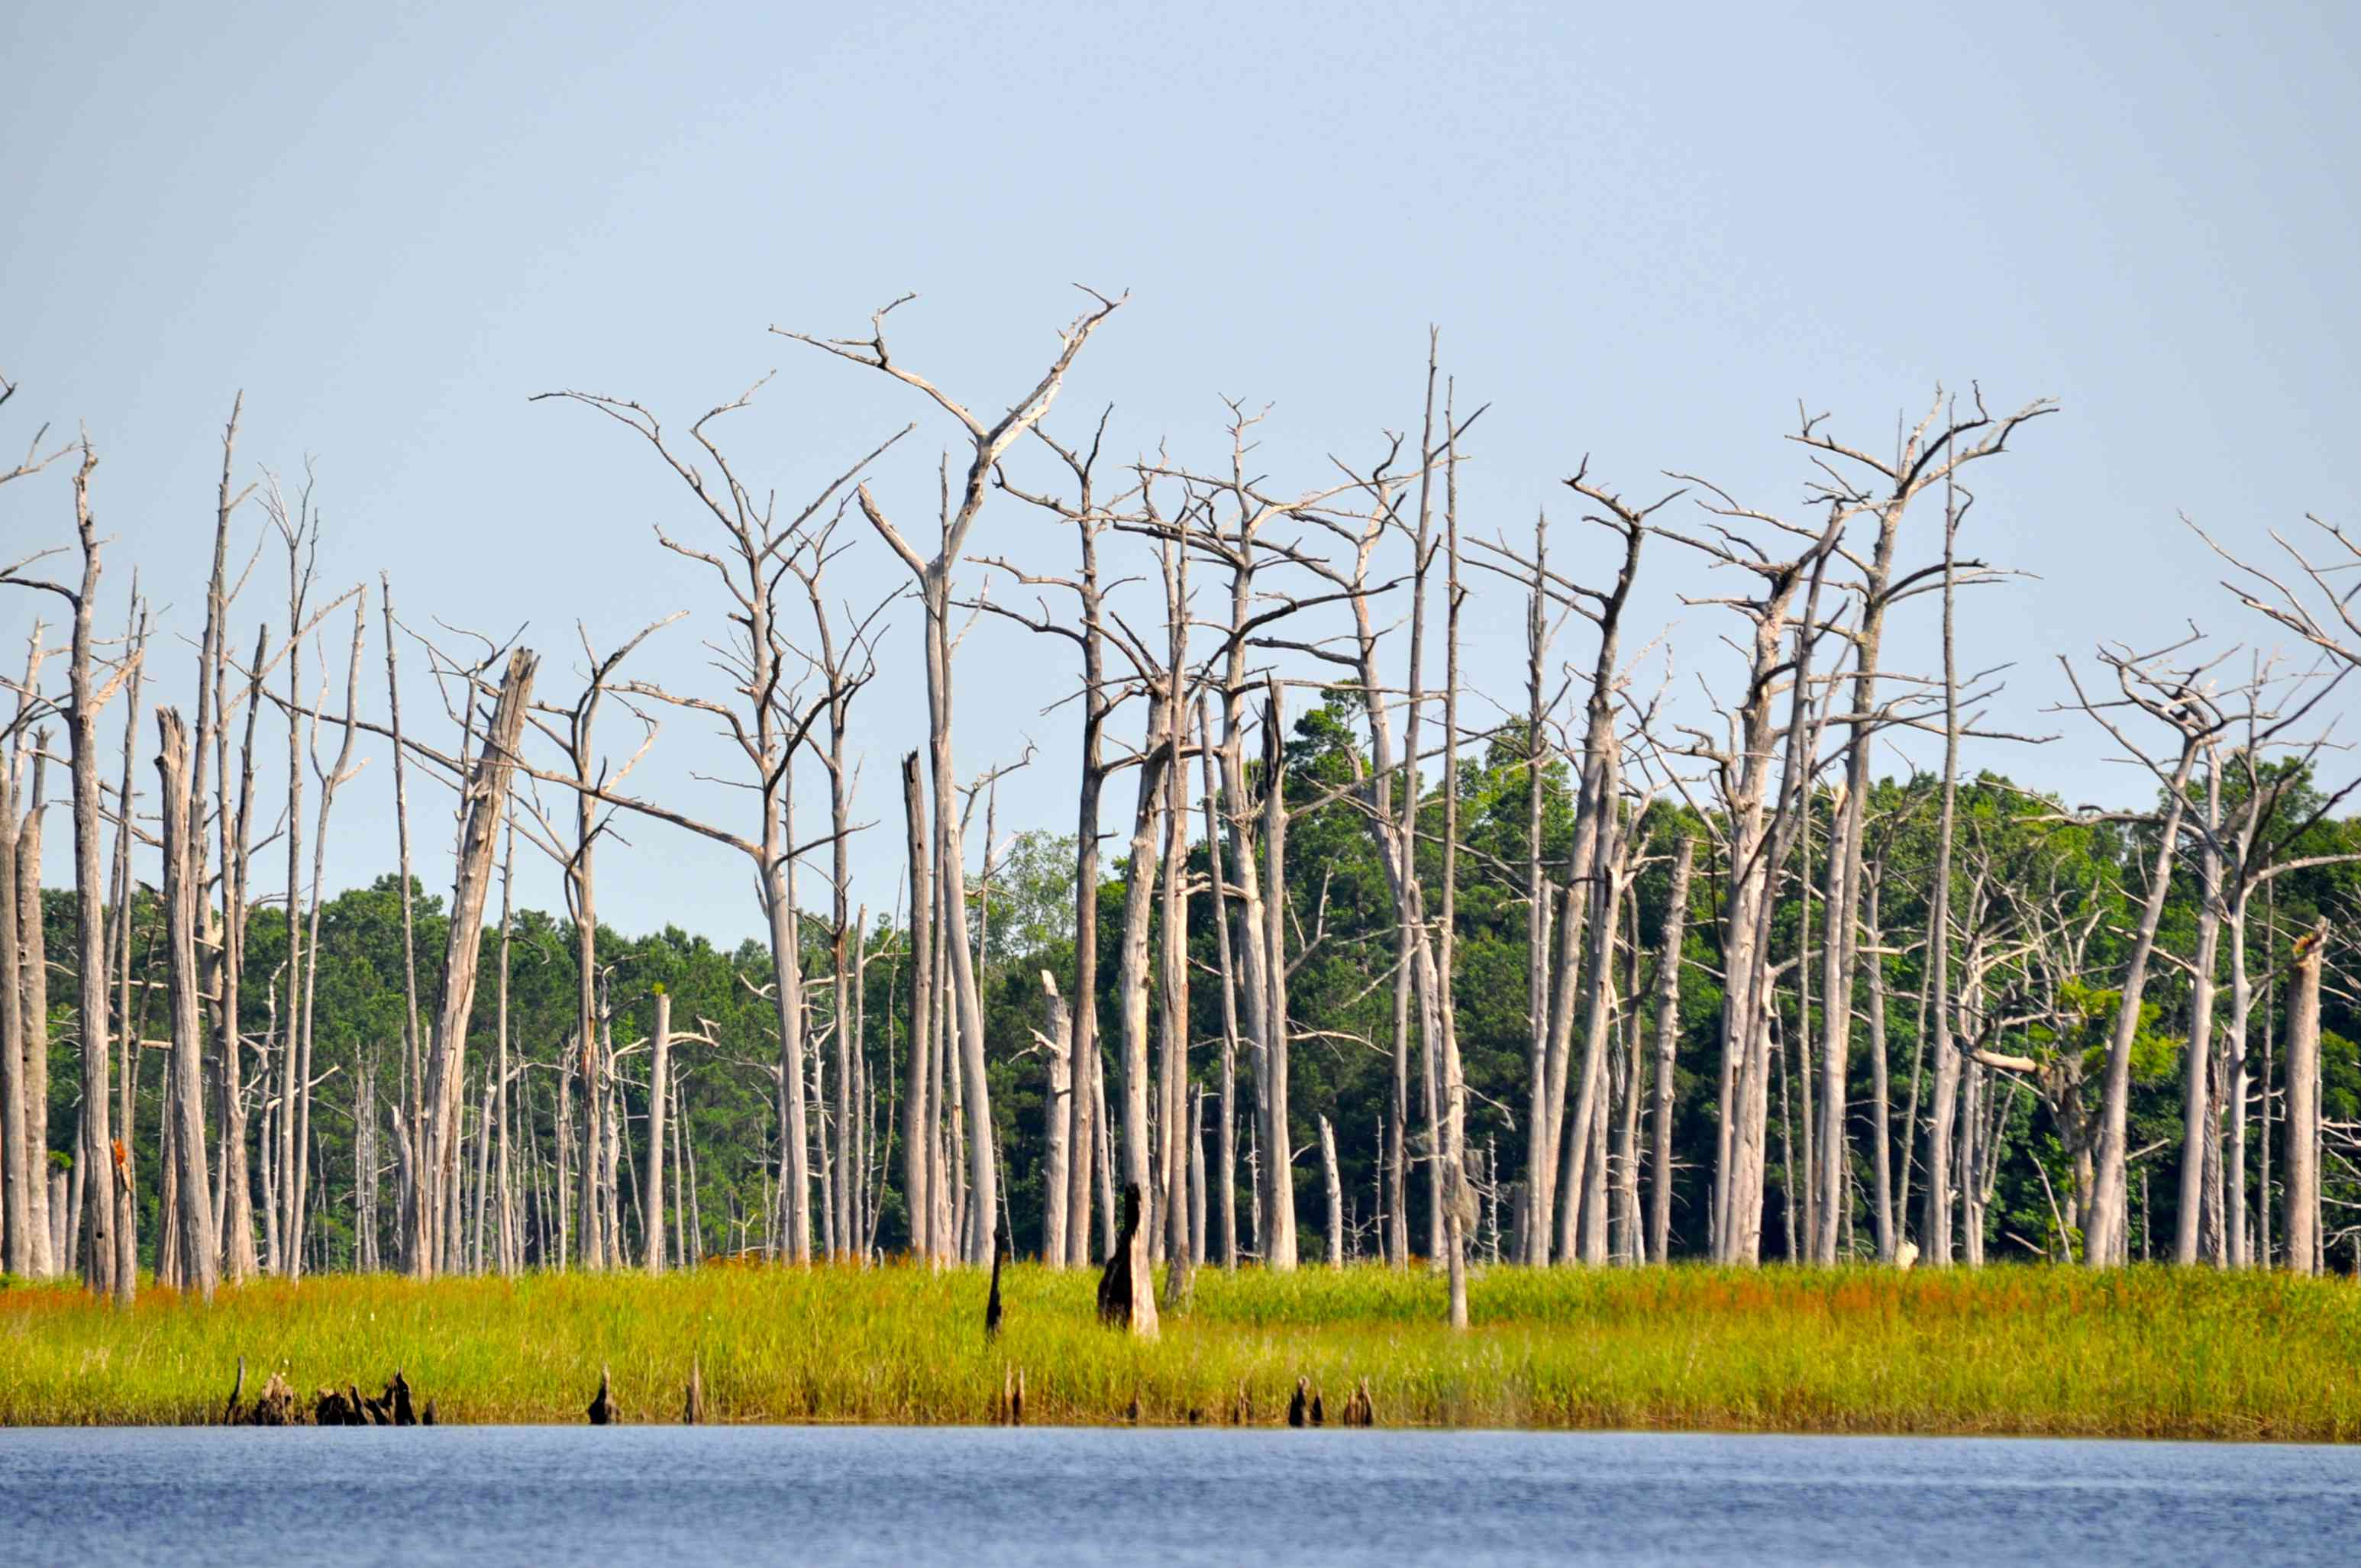 dead cypress trees stand like gray ghosts along a river